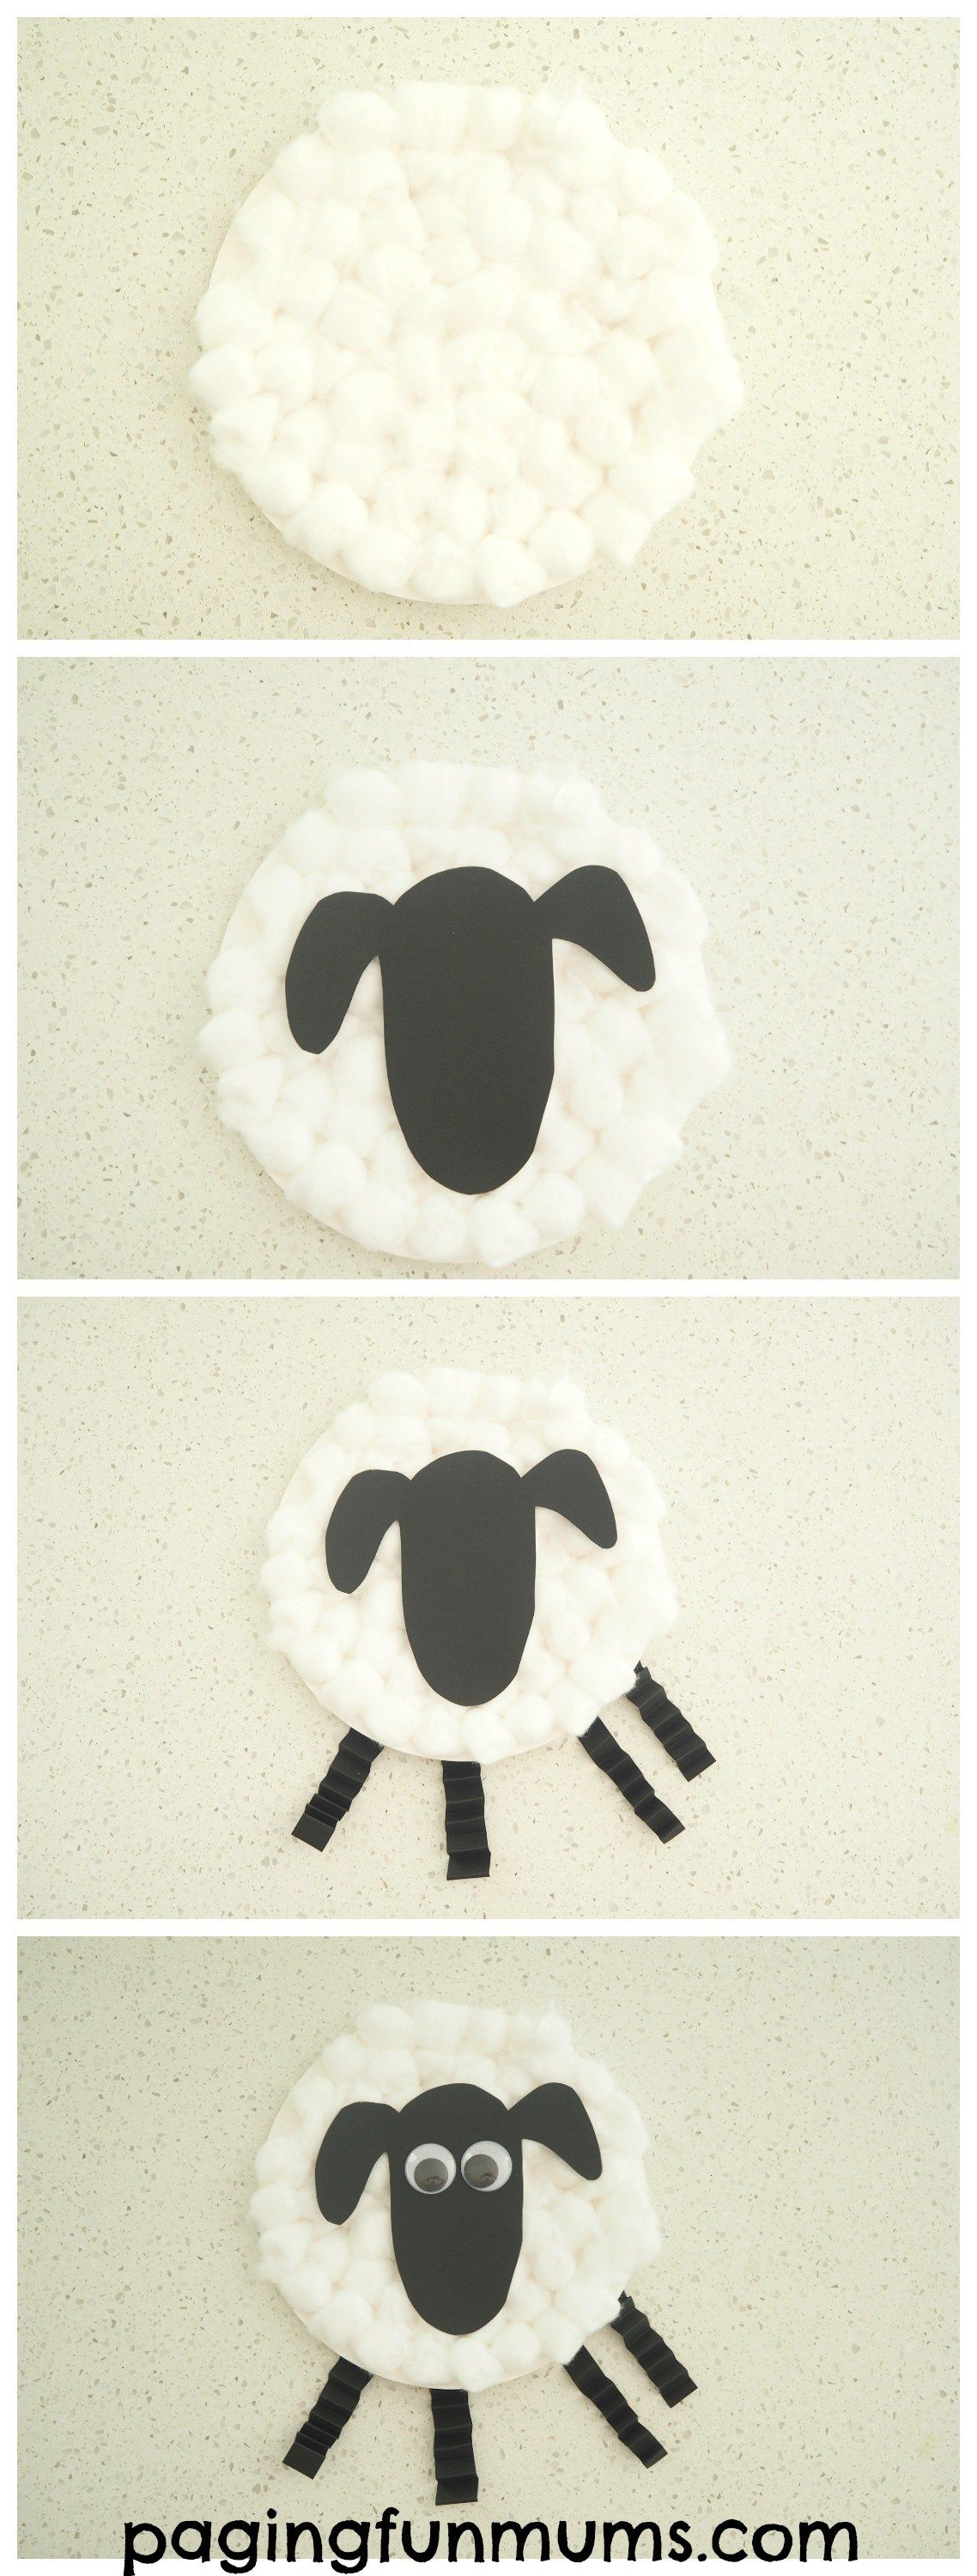 Paper Plate Sheep Craft. Simple to make and oh so adorable! & Paper Plate Sheep Craft | Pinterest | Sheep crafts Craft and Sunday ...